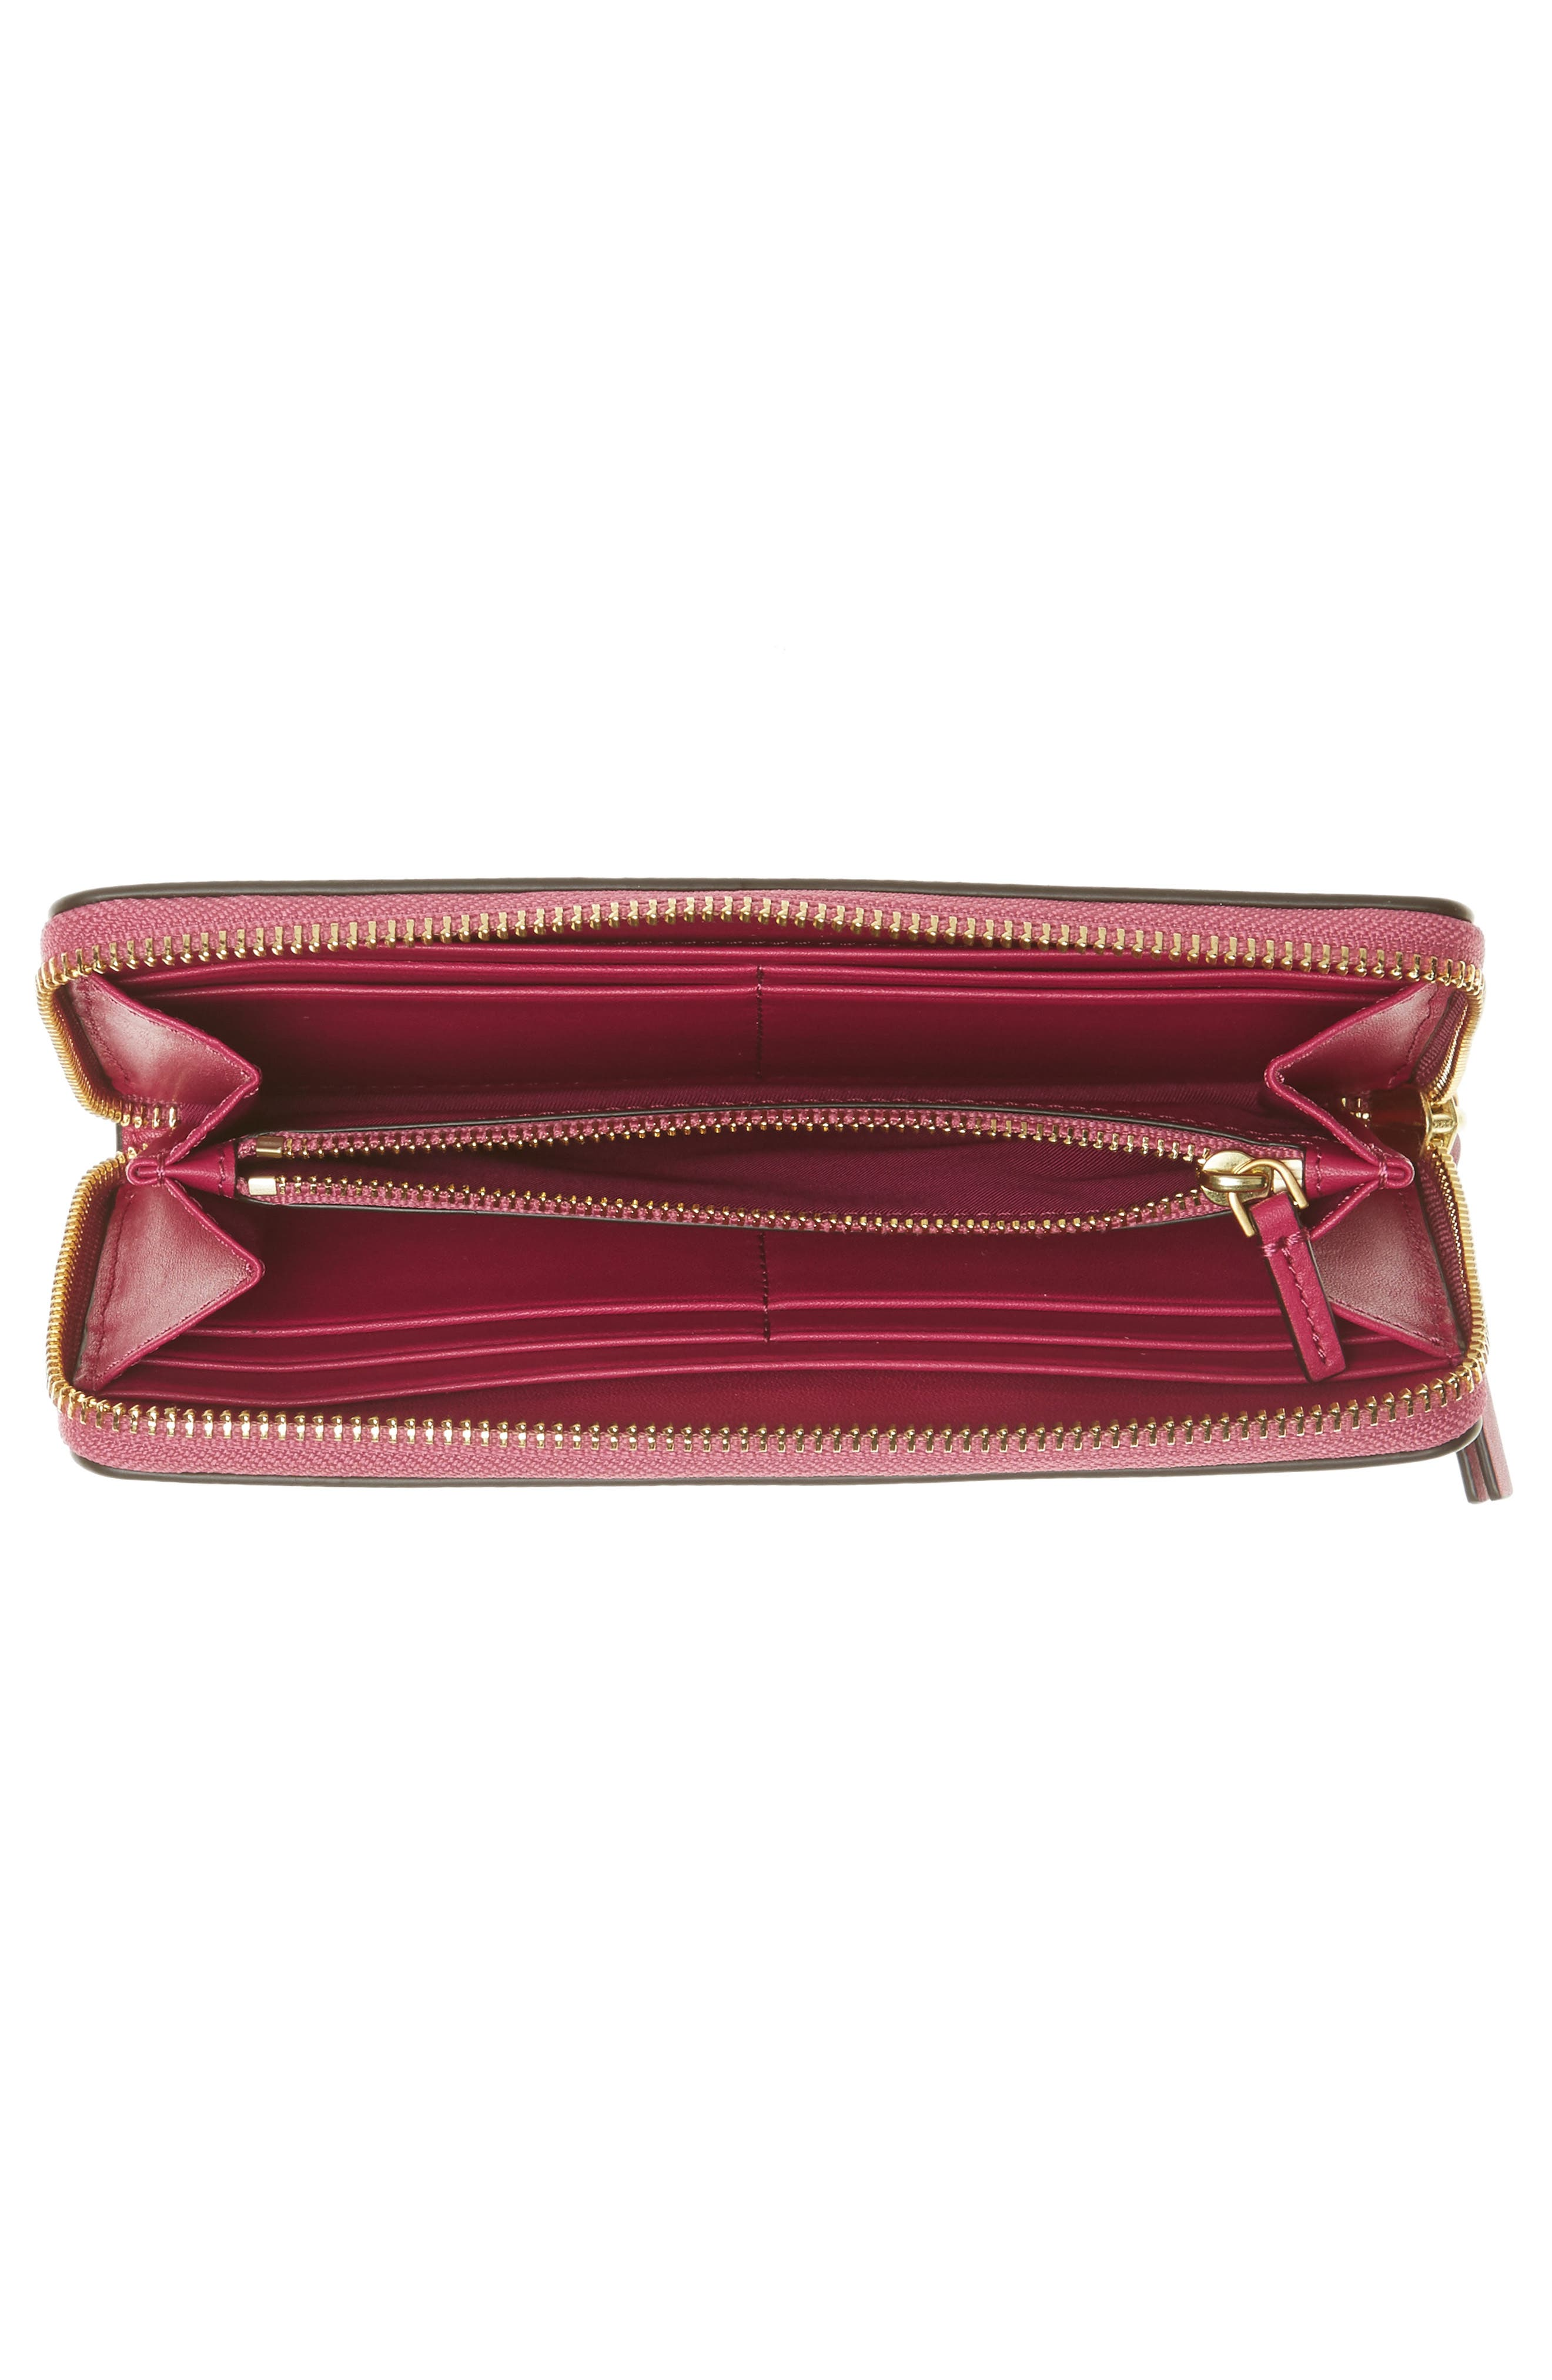 Charlie Leather Continental Wallet,                             Alternate thumbnail 3, color,                             Party Fuchsia